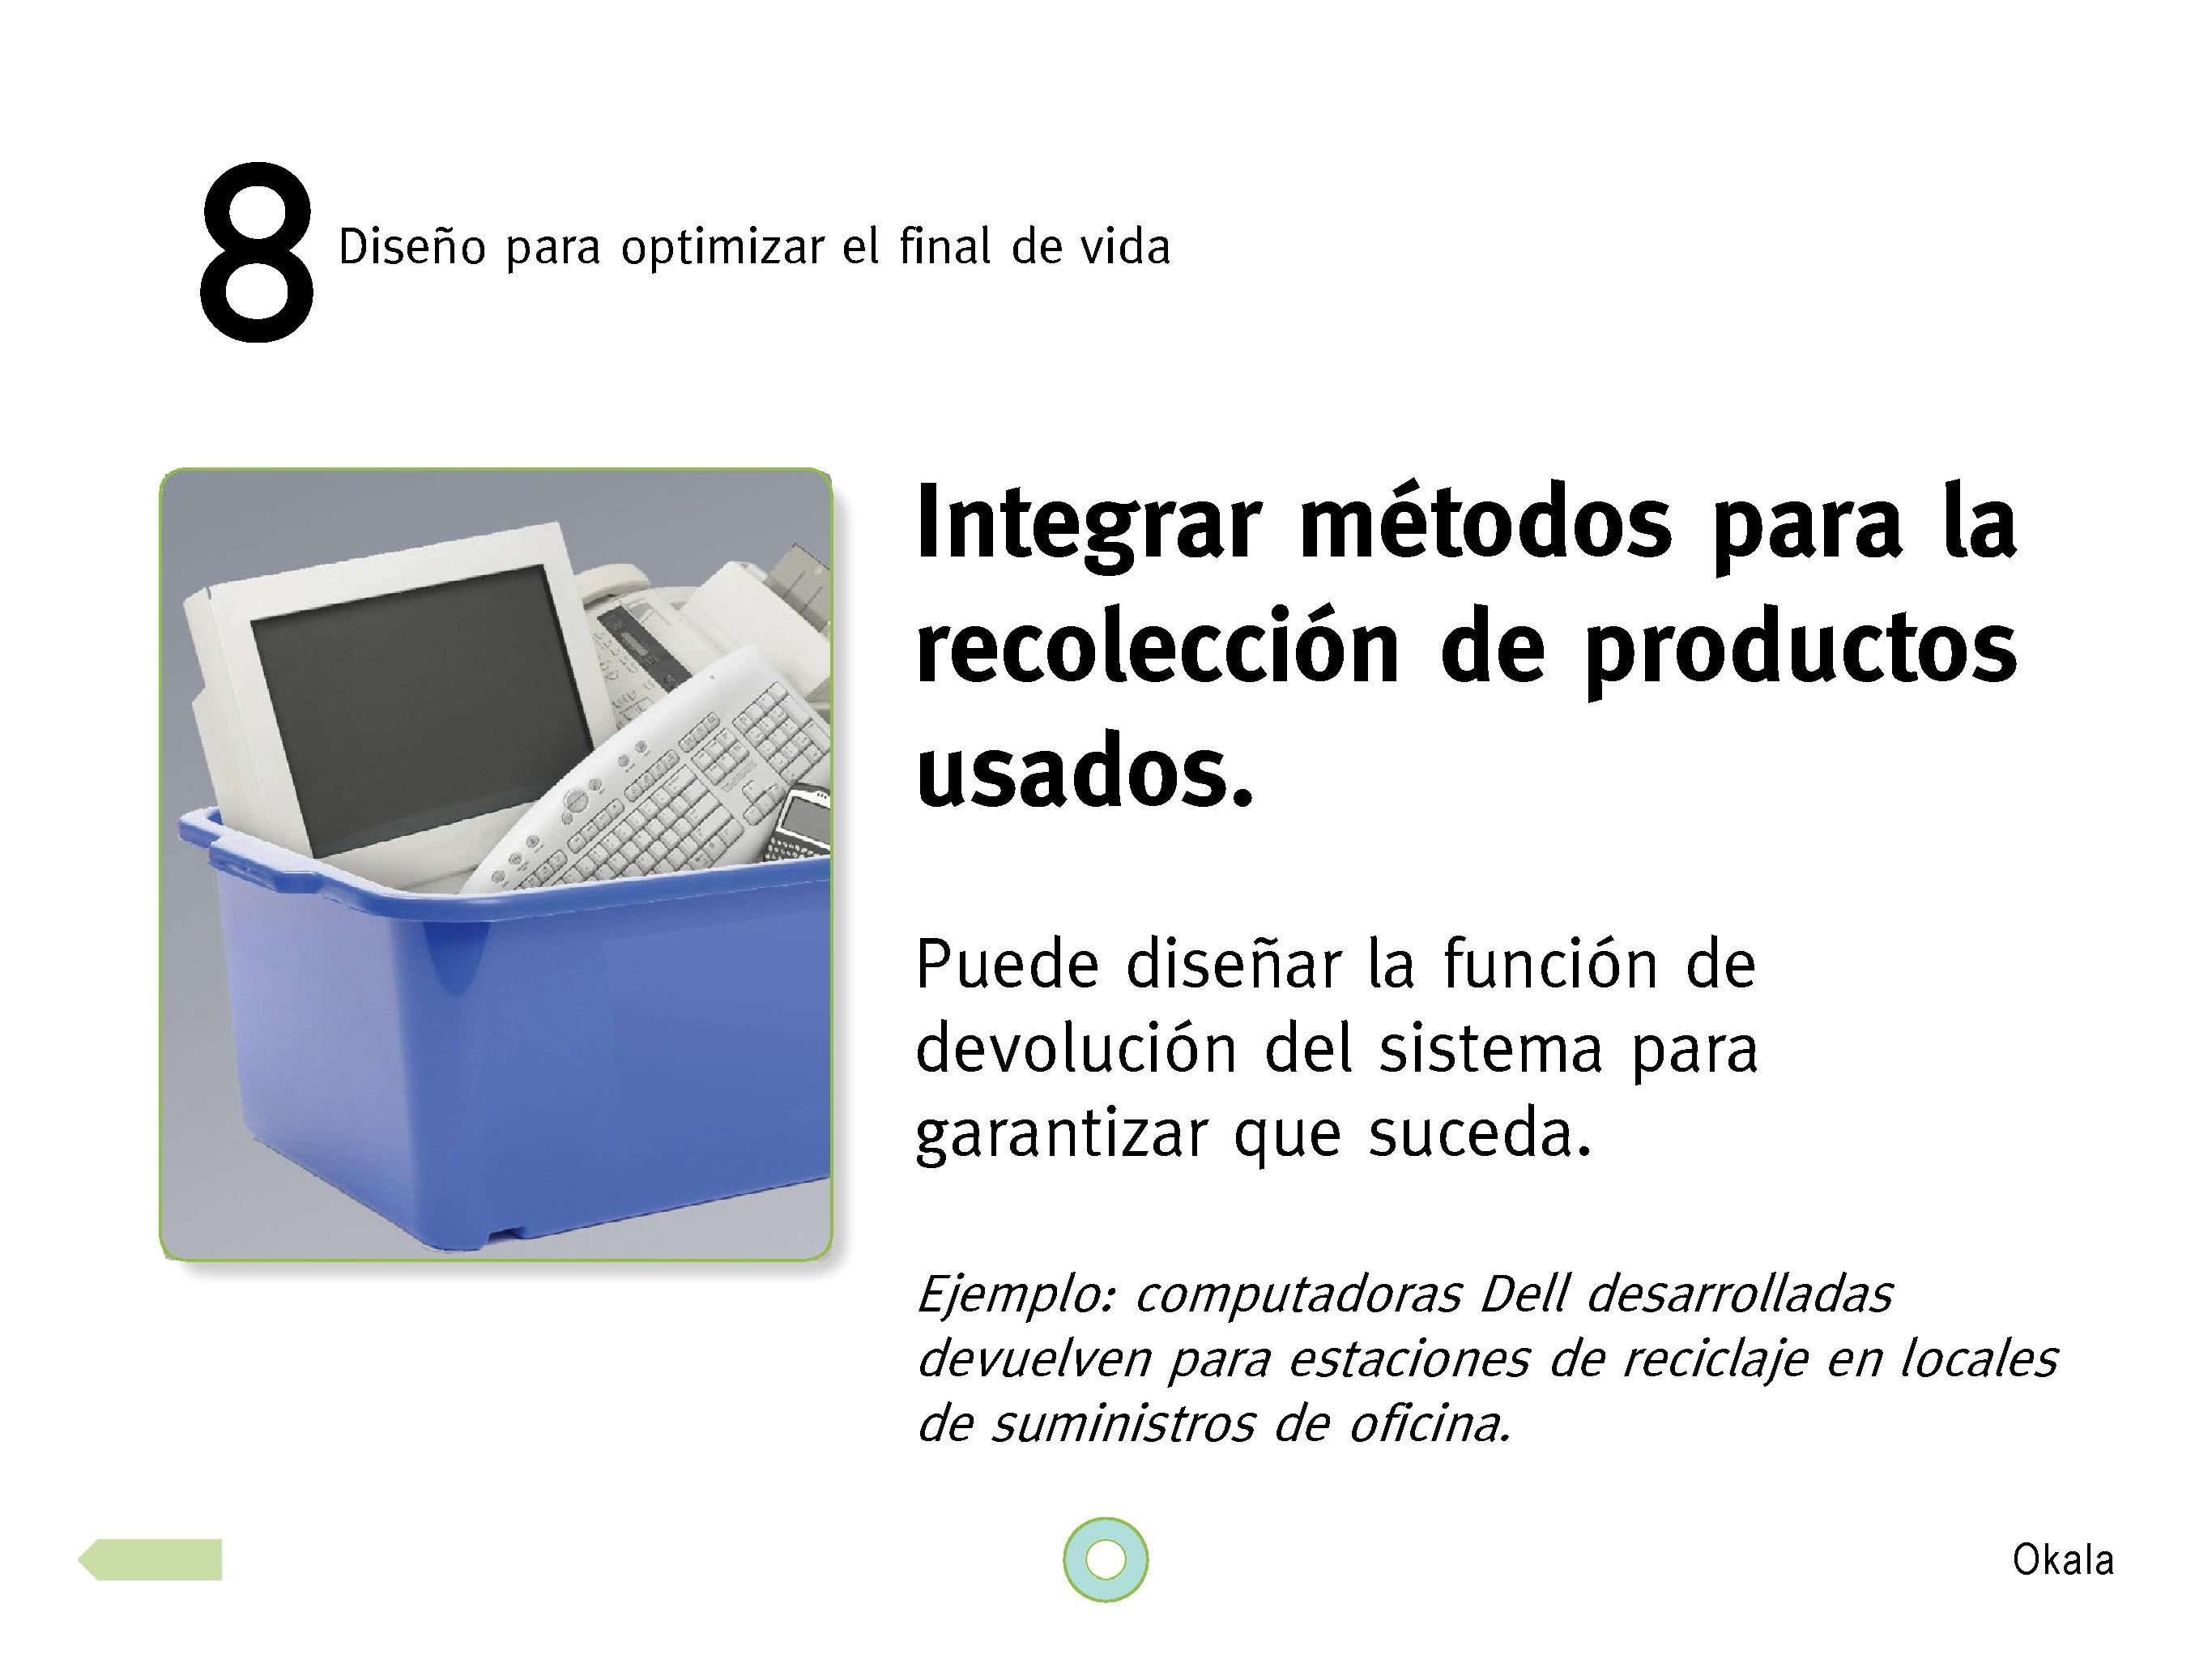 okala-ecodesign-strategy-guide-2012-spanish.new_page_41-1